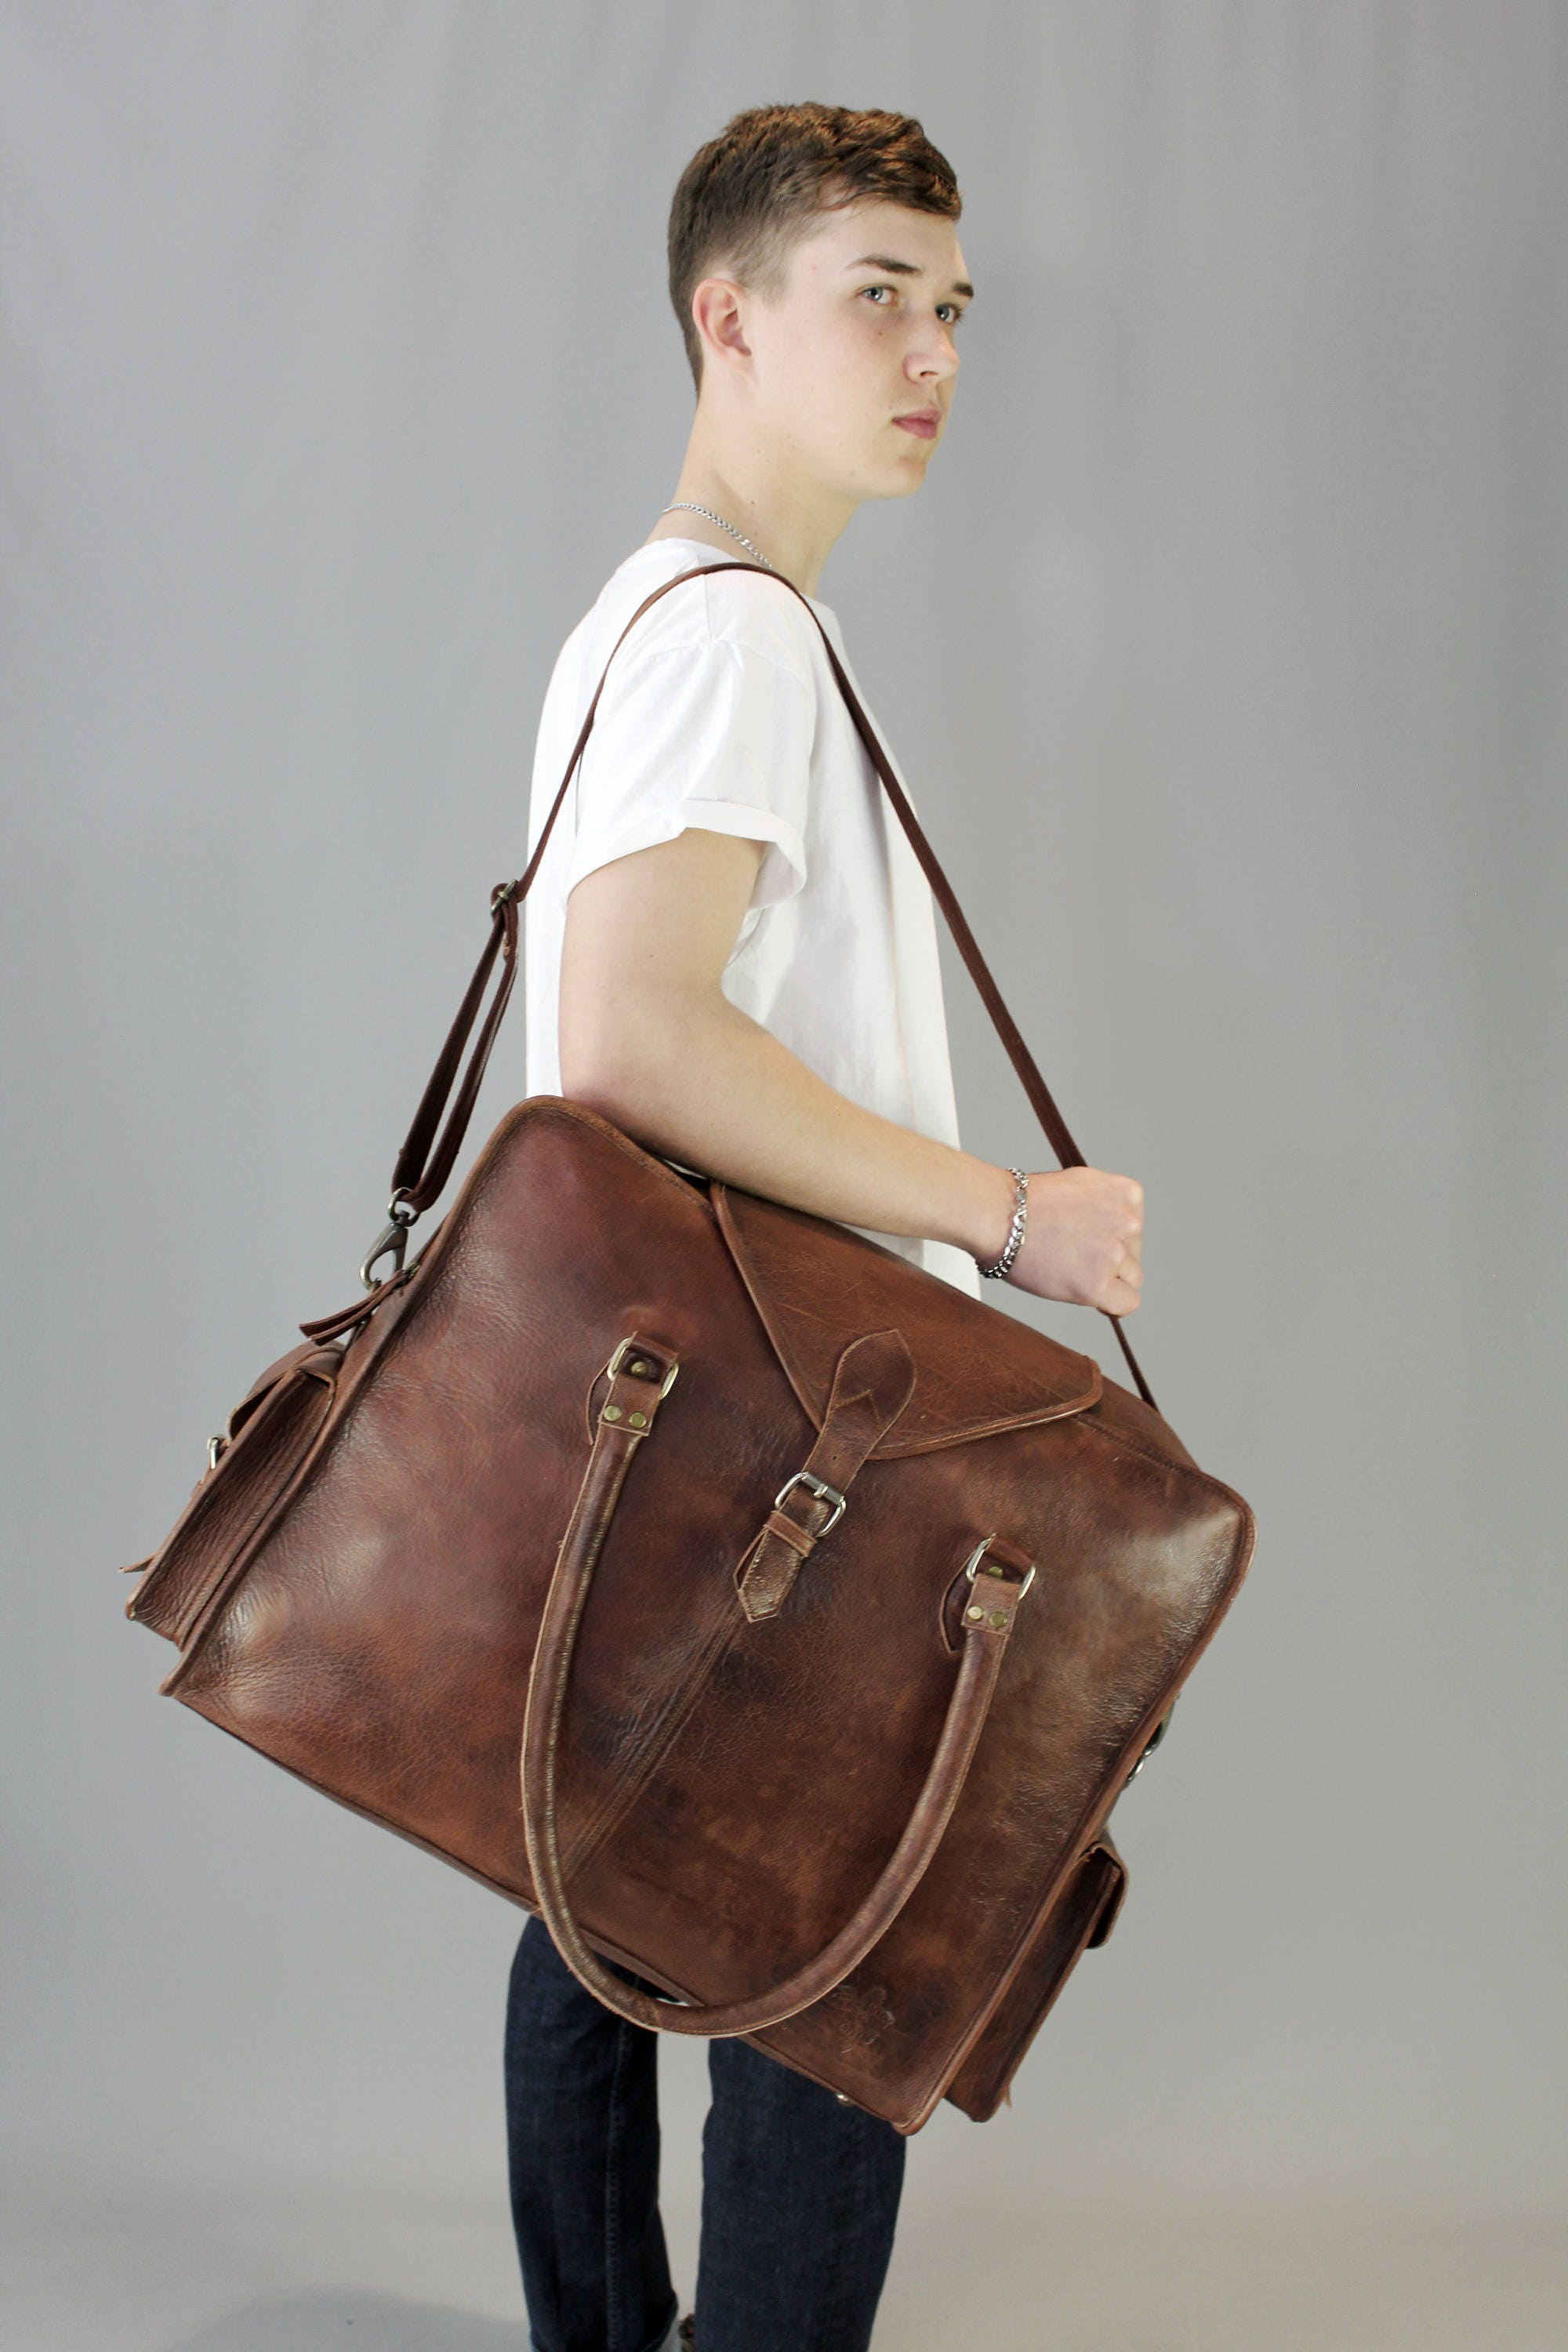 The Vagabond Extra Large Vintage style brown leather holdall duffle weekend bag flight cabin unisex mens personalized luggage tag gift